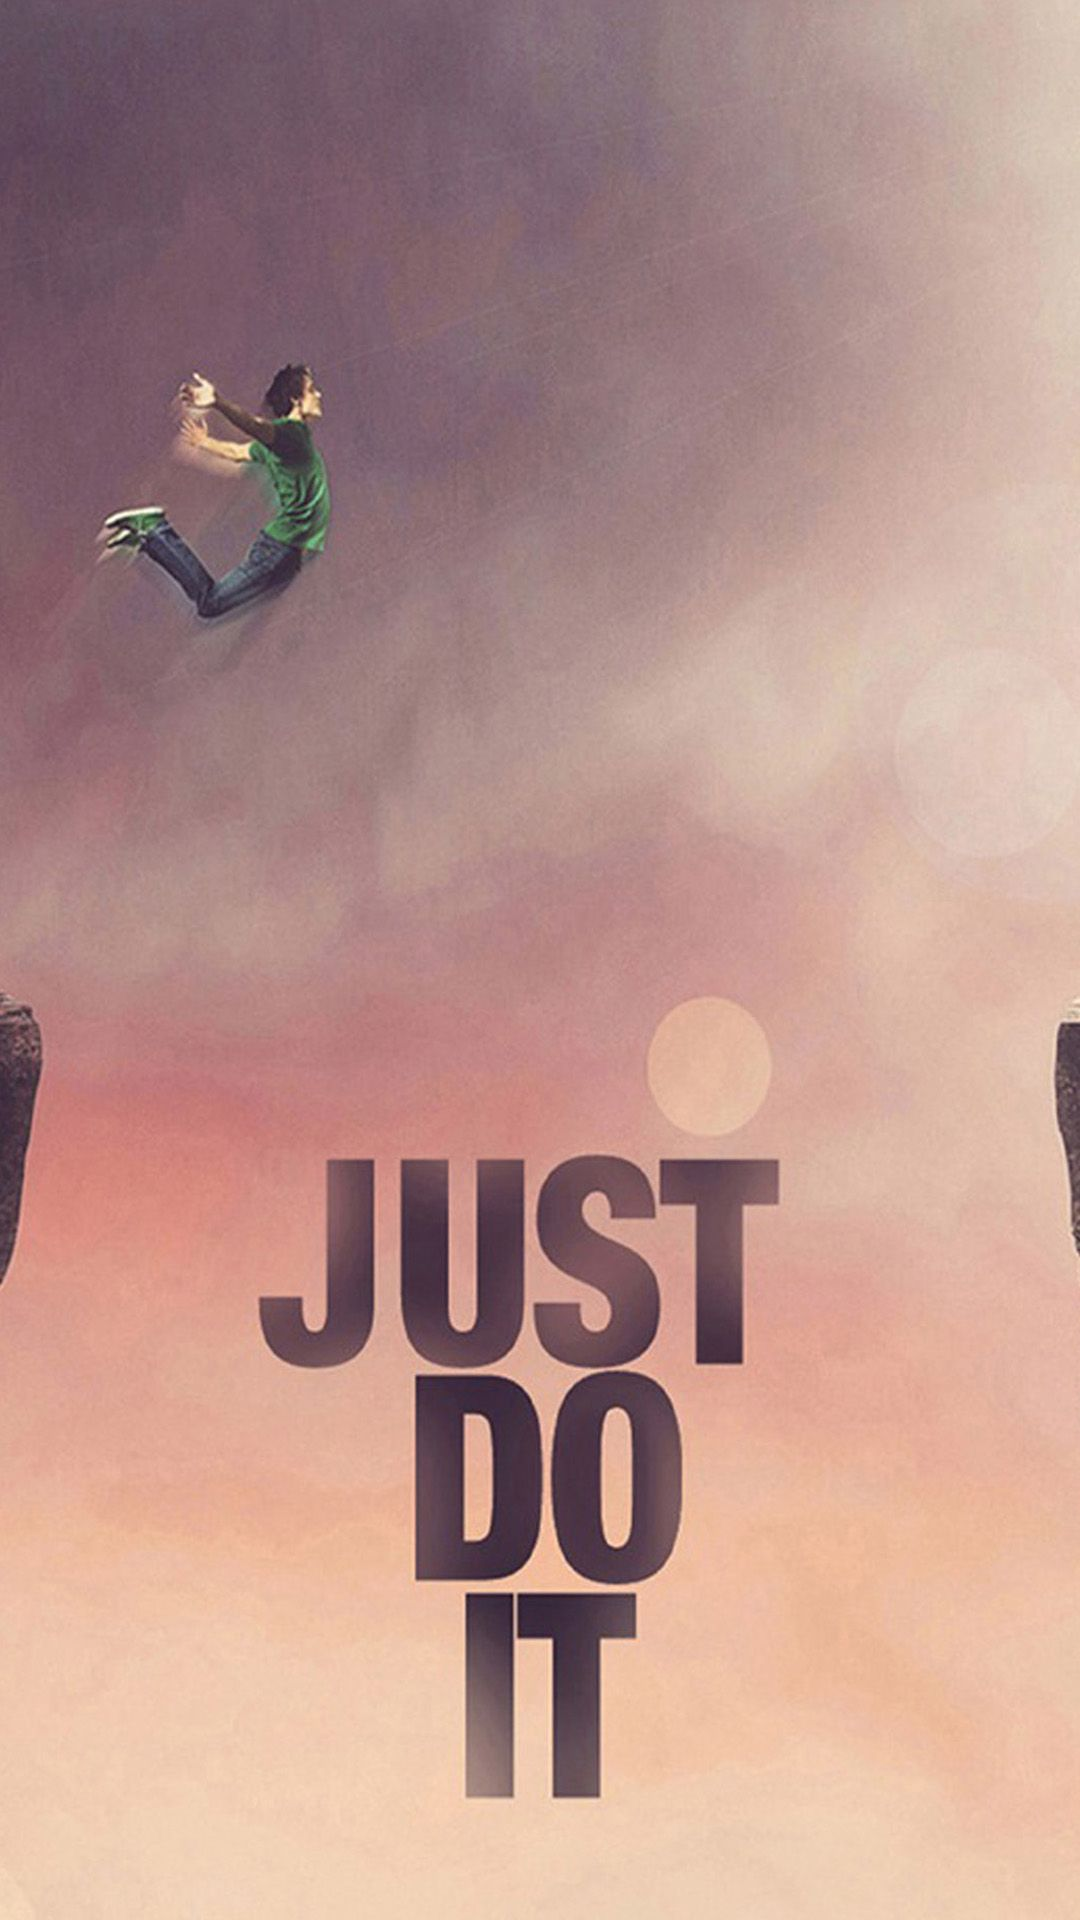 Nike Wallpaper Just do it wallpapers, Tumblr iphone